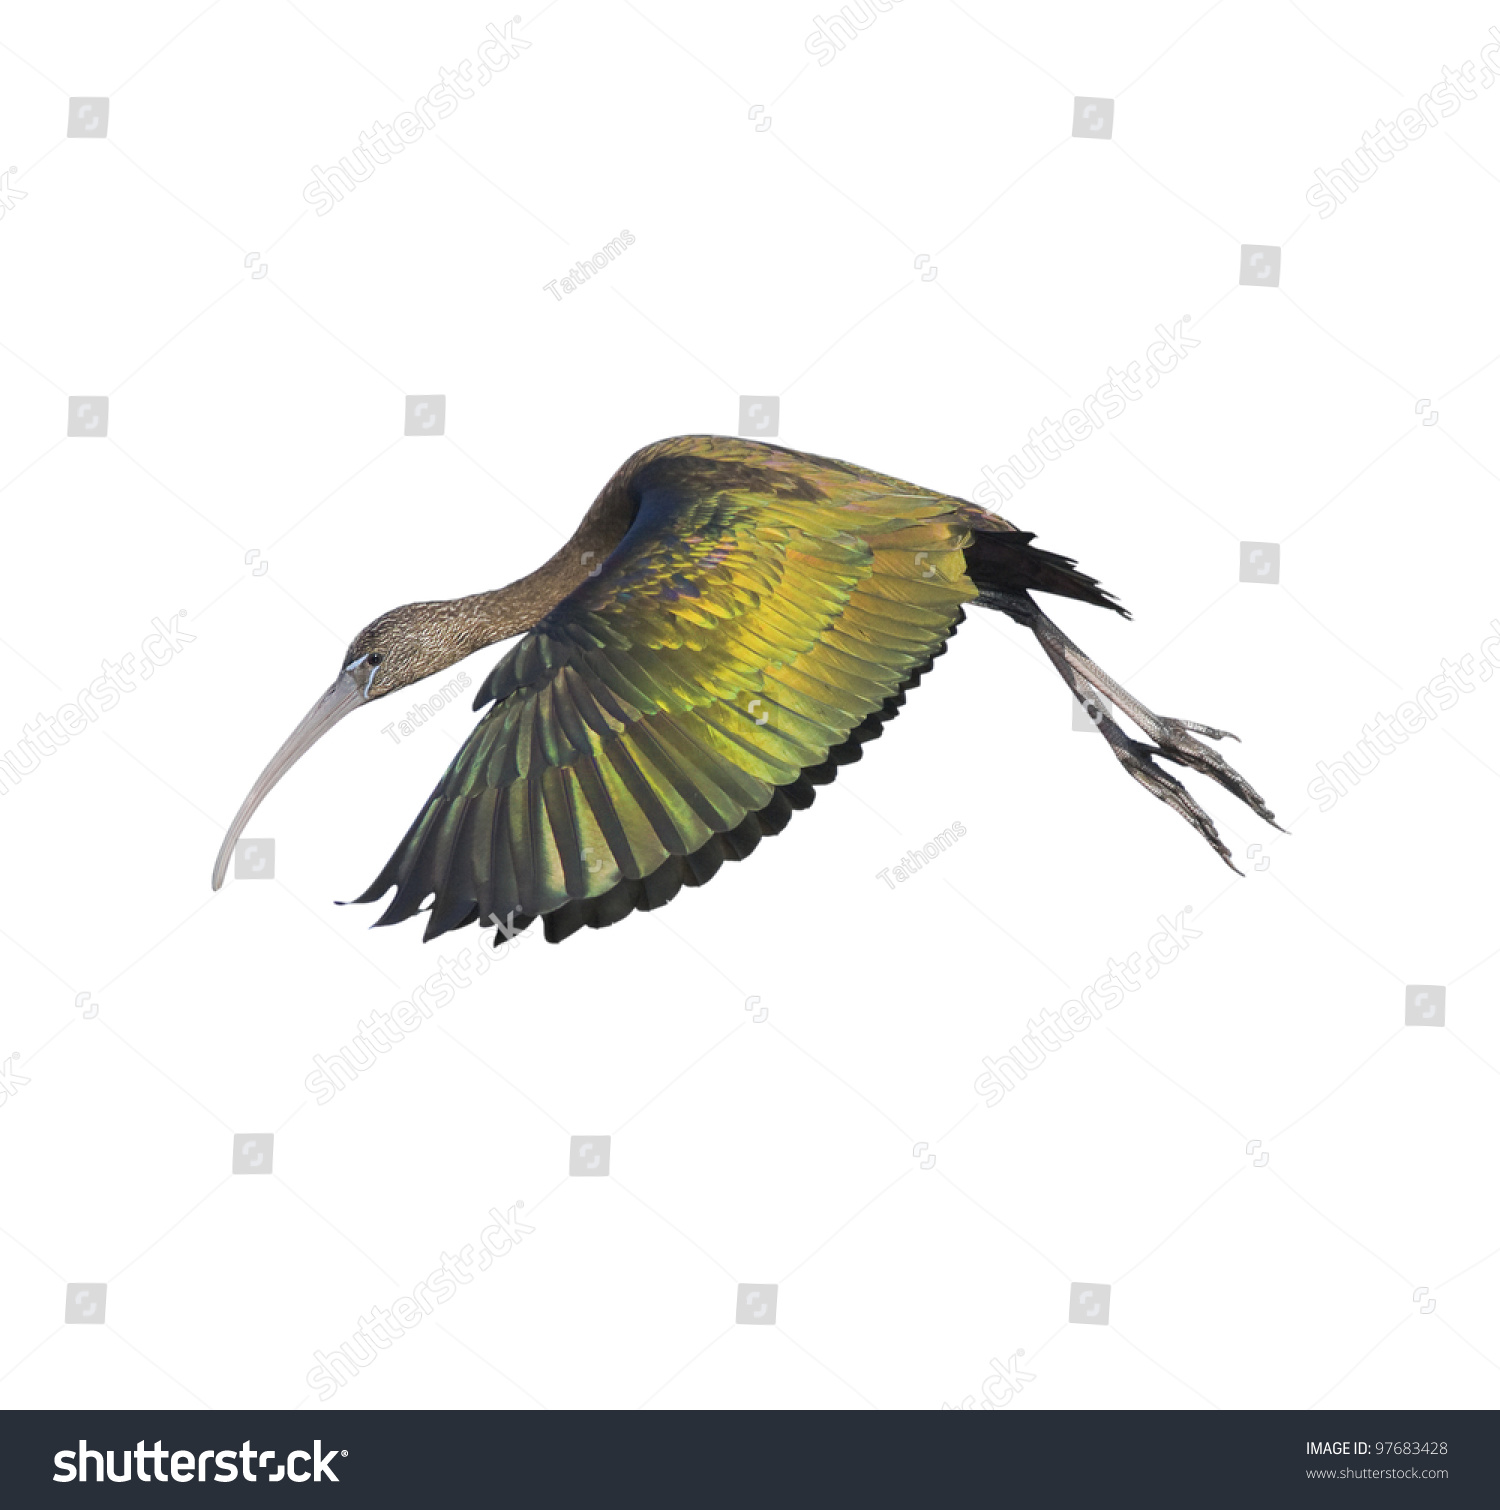 Glossy ibis in flight, isolated on white. Latin name - Plegadis falcinellus.